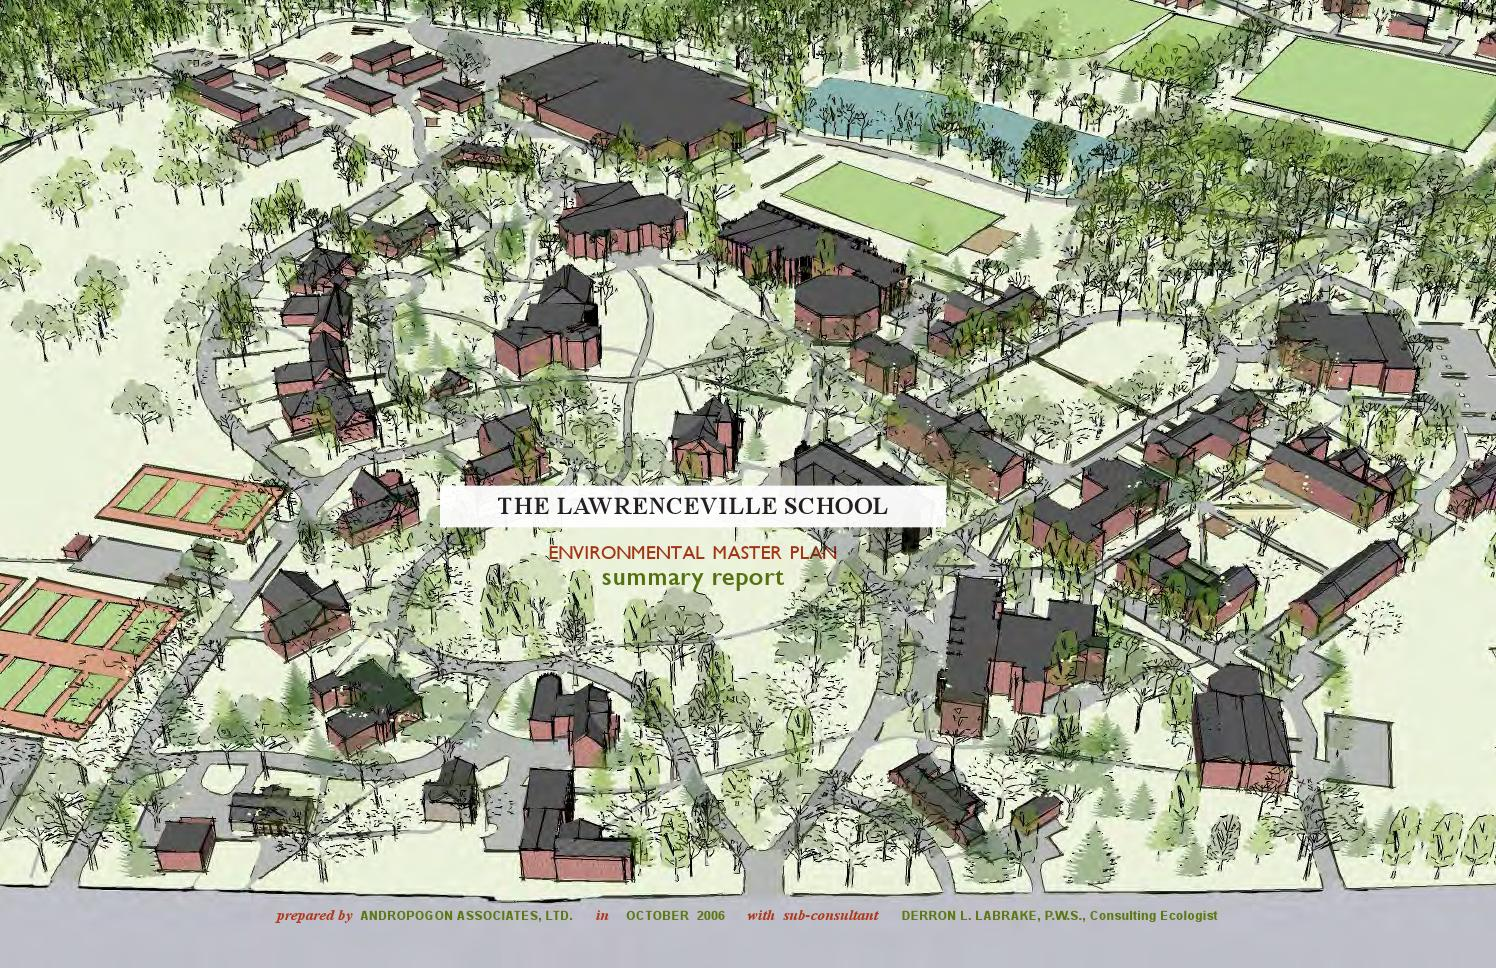 Lawrenceville School Environmental Master Plan By